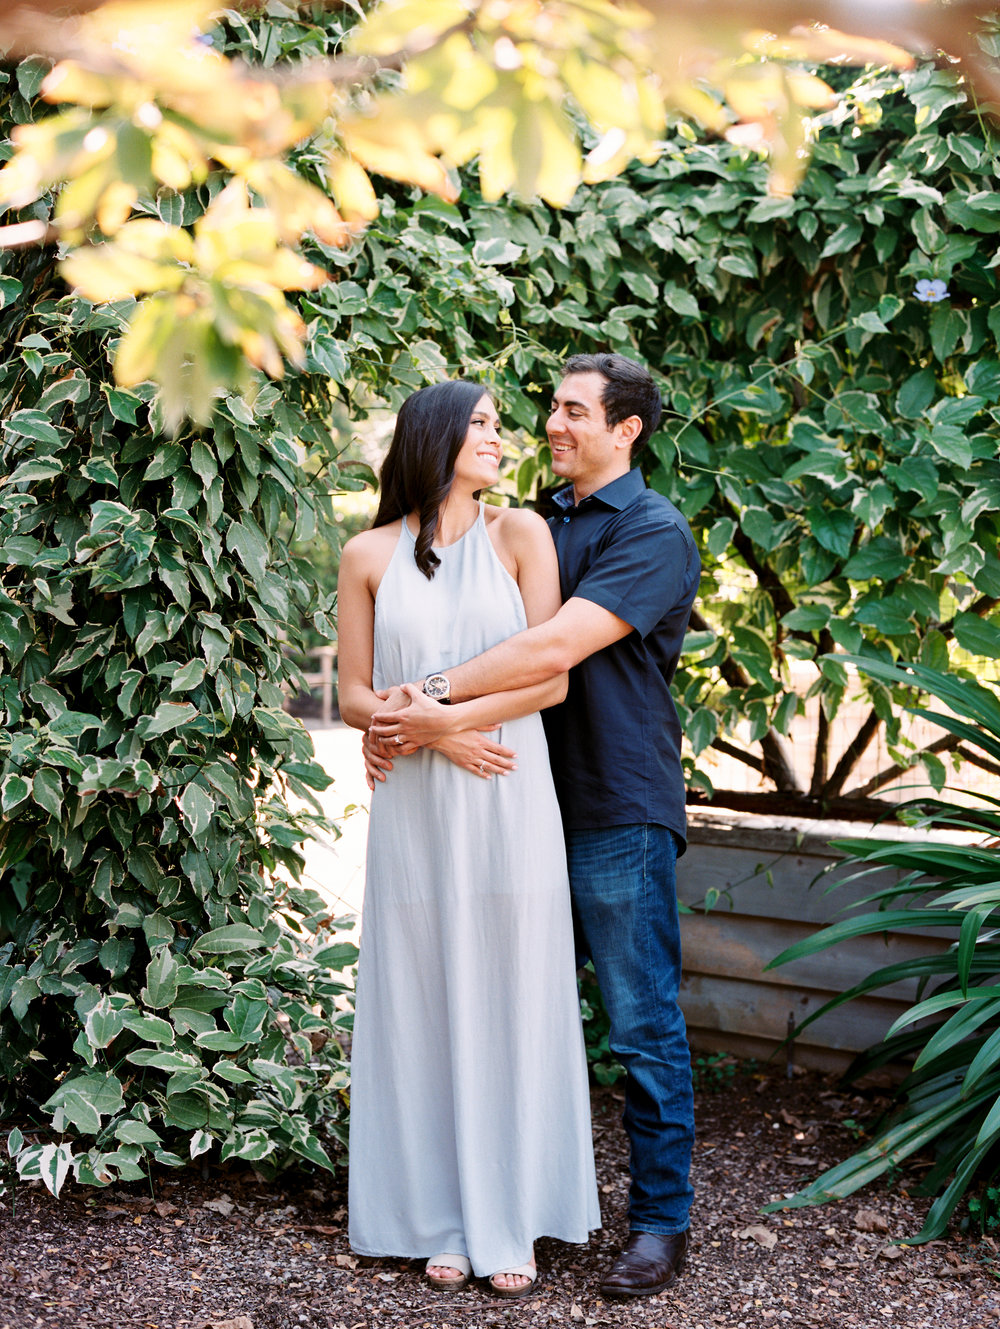 dallas-arboretum-botanical-garden-engagements-ar-photography-lindsey-vance-121.jpg